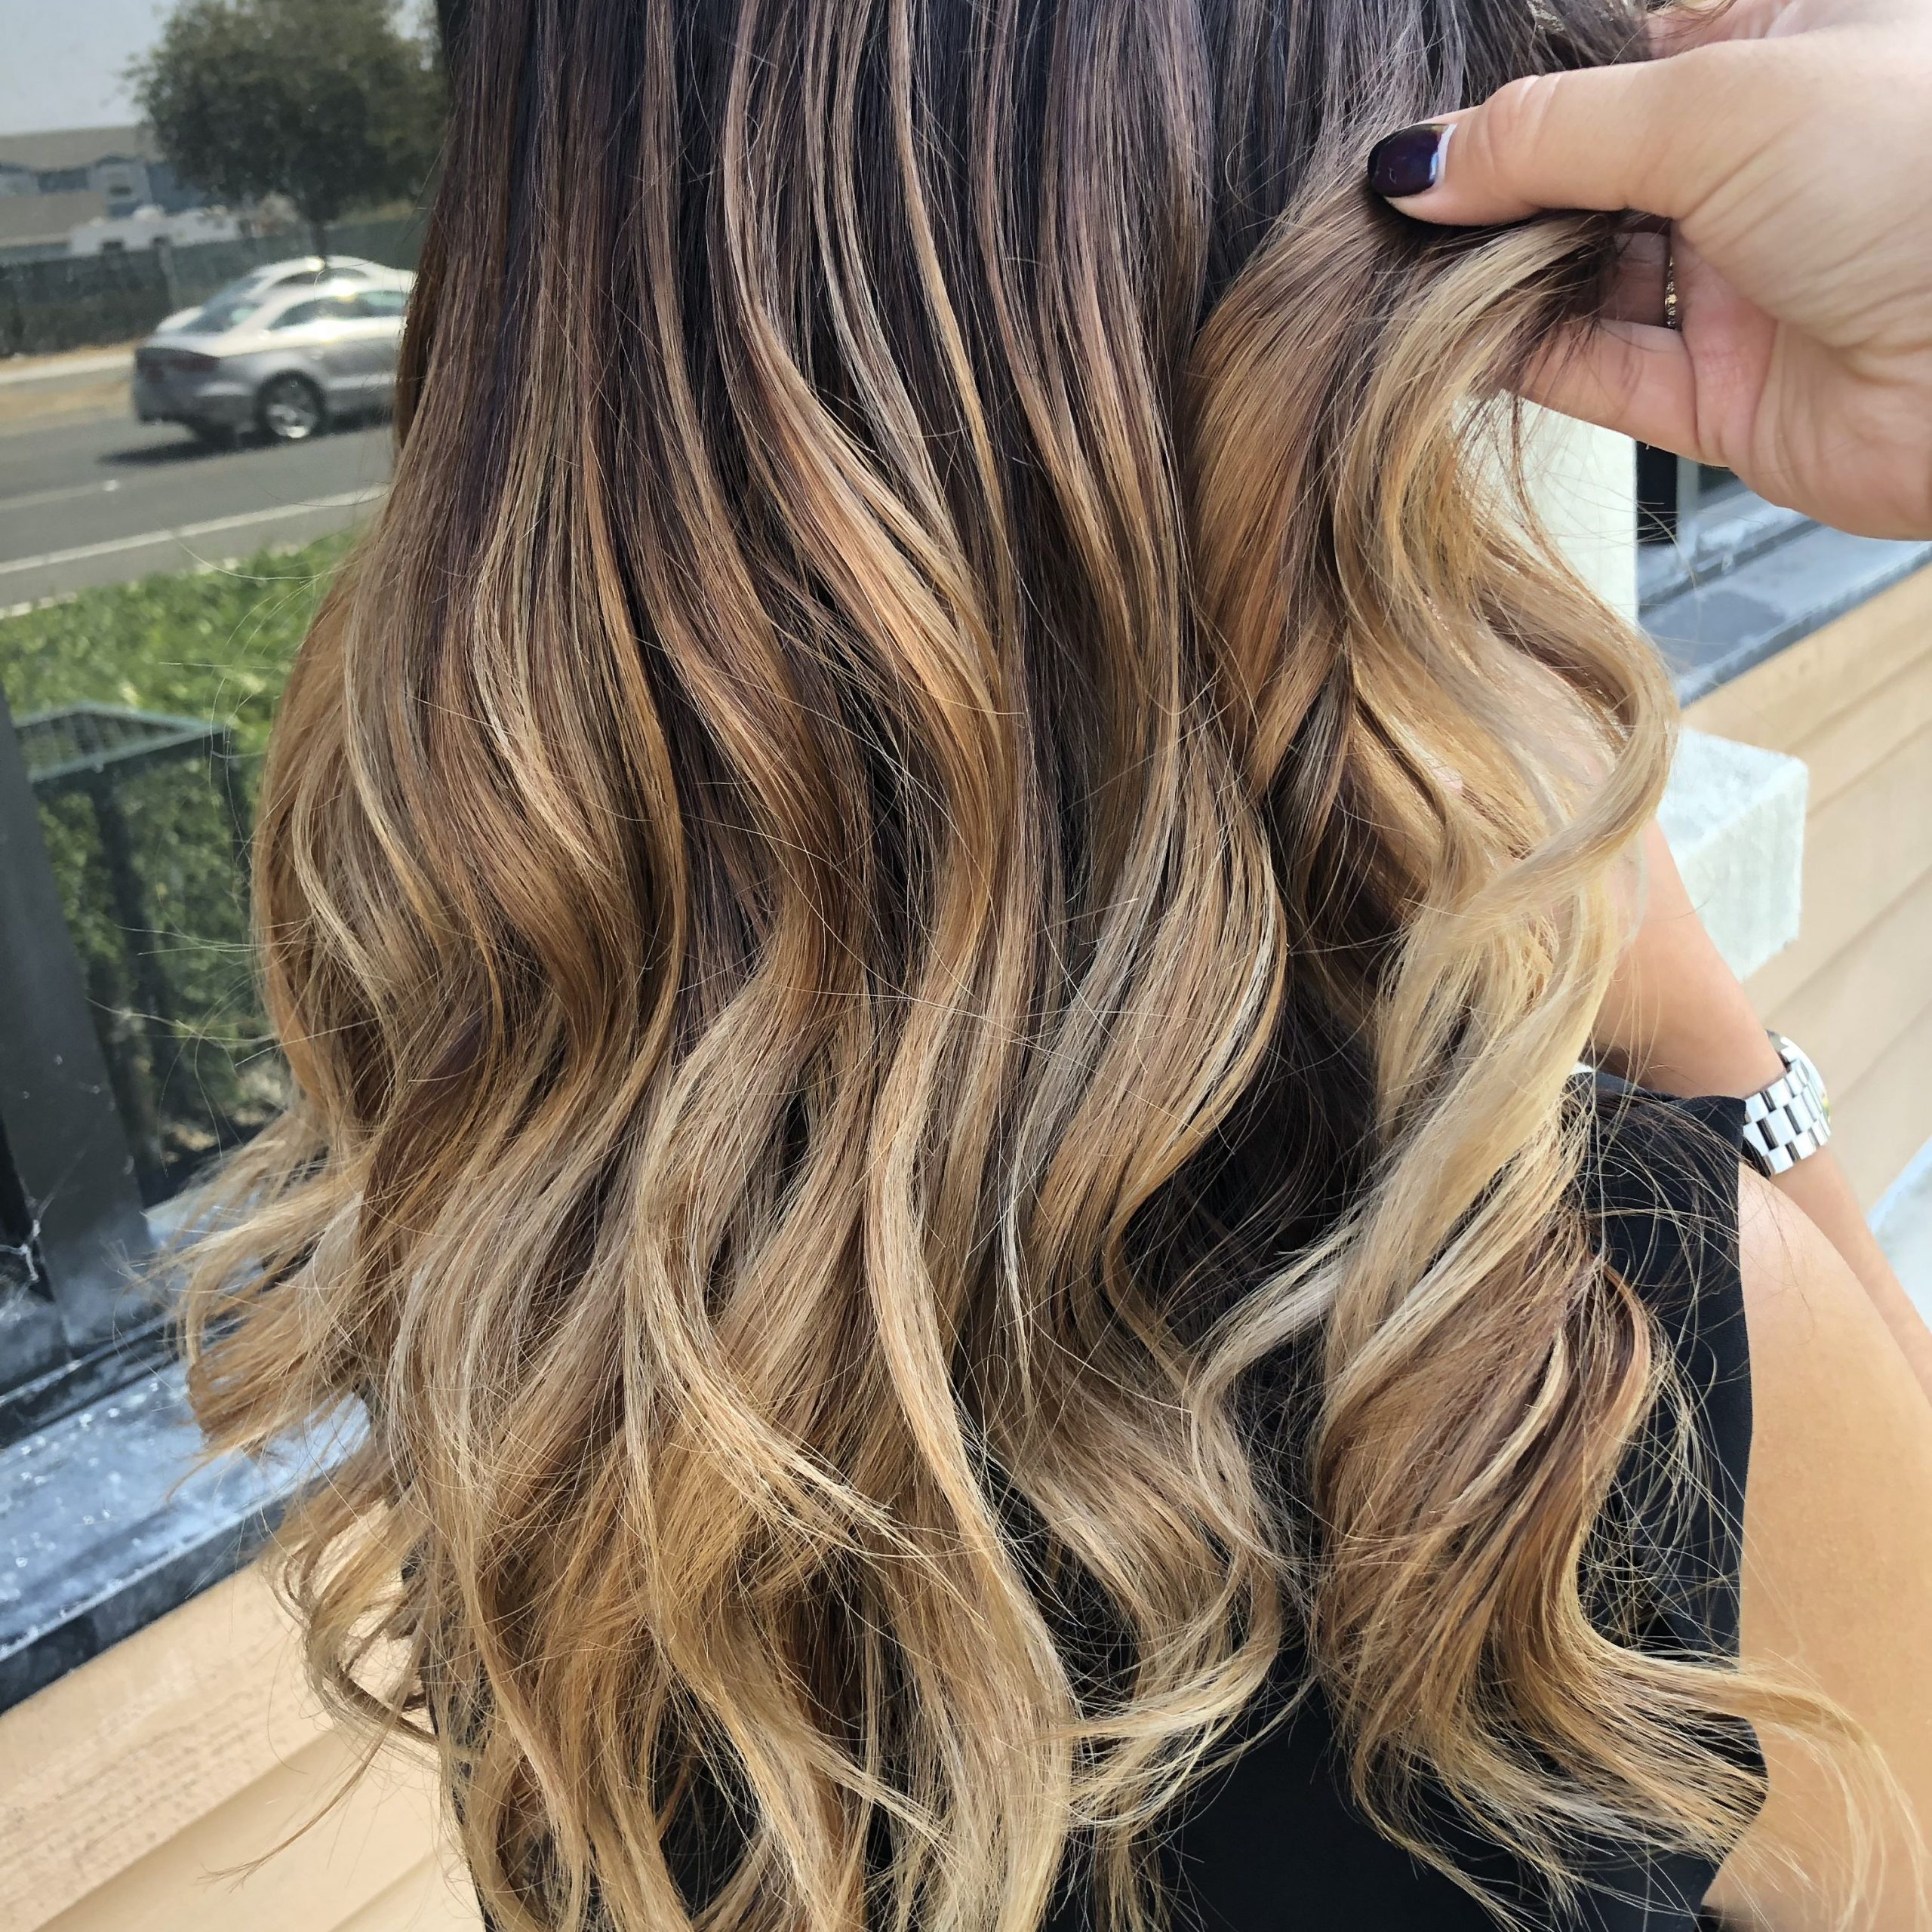 2018 Golden Blonde Balayage On Long Curls Hairstyles Intended For Golden Godess (View 8 of 20)